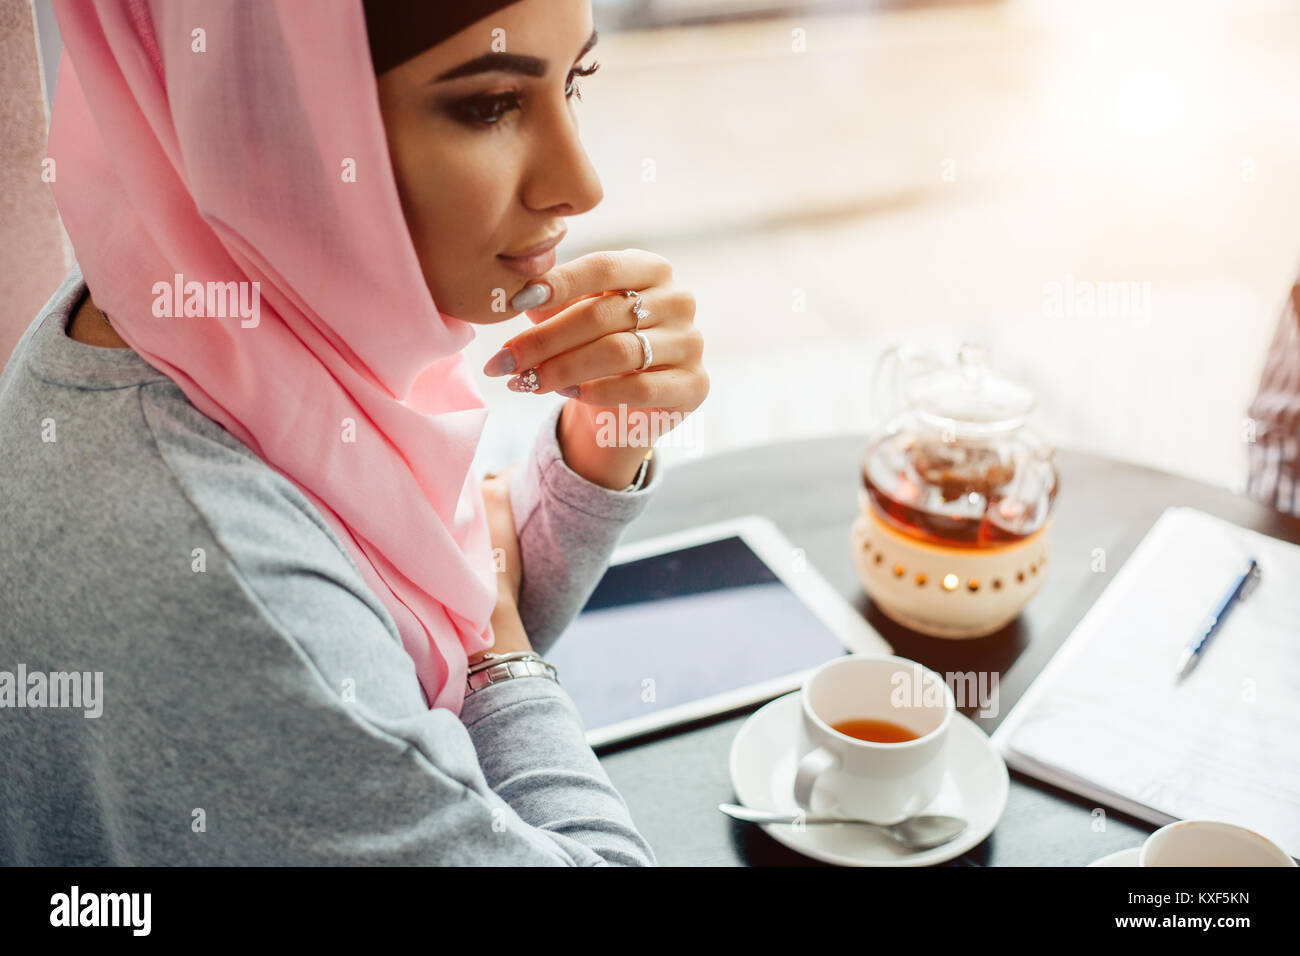 Portrait of a beautiful Muslim woman in cafe - Stock Image